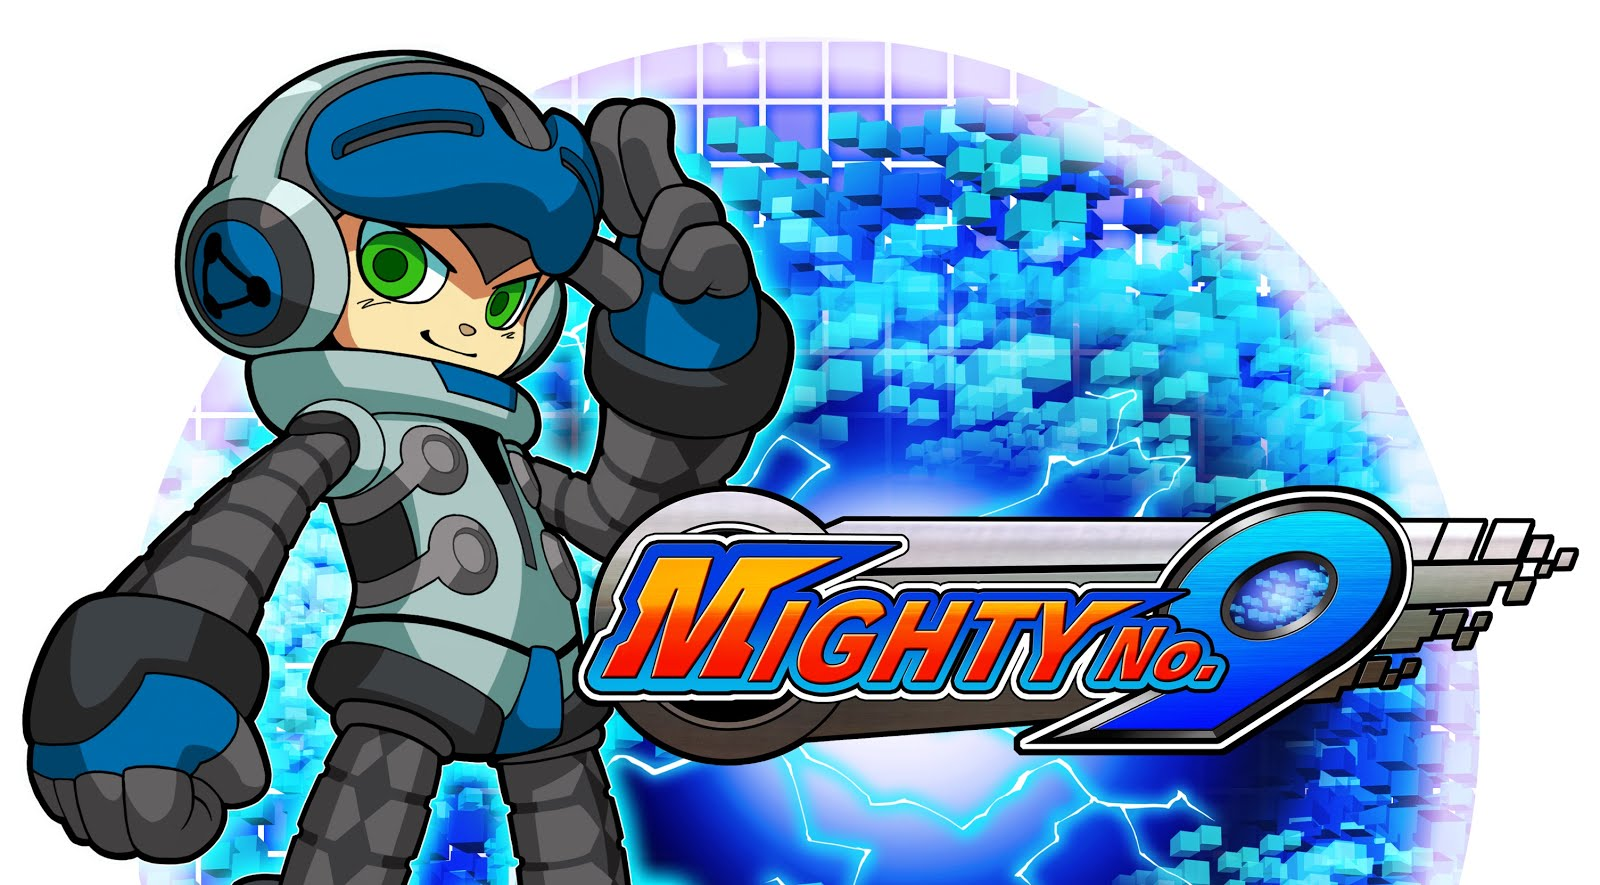 Mighty No. 9's Beck, the blue-armored protagonist, salutes the player.